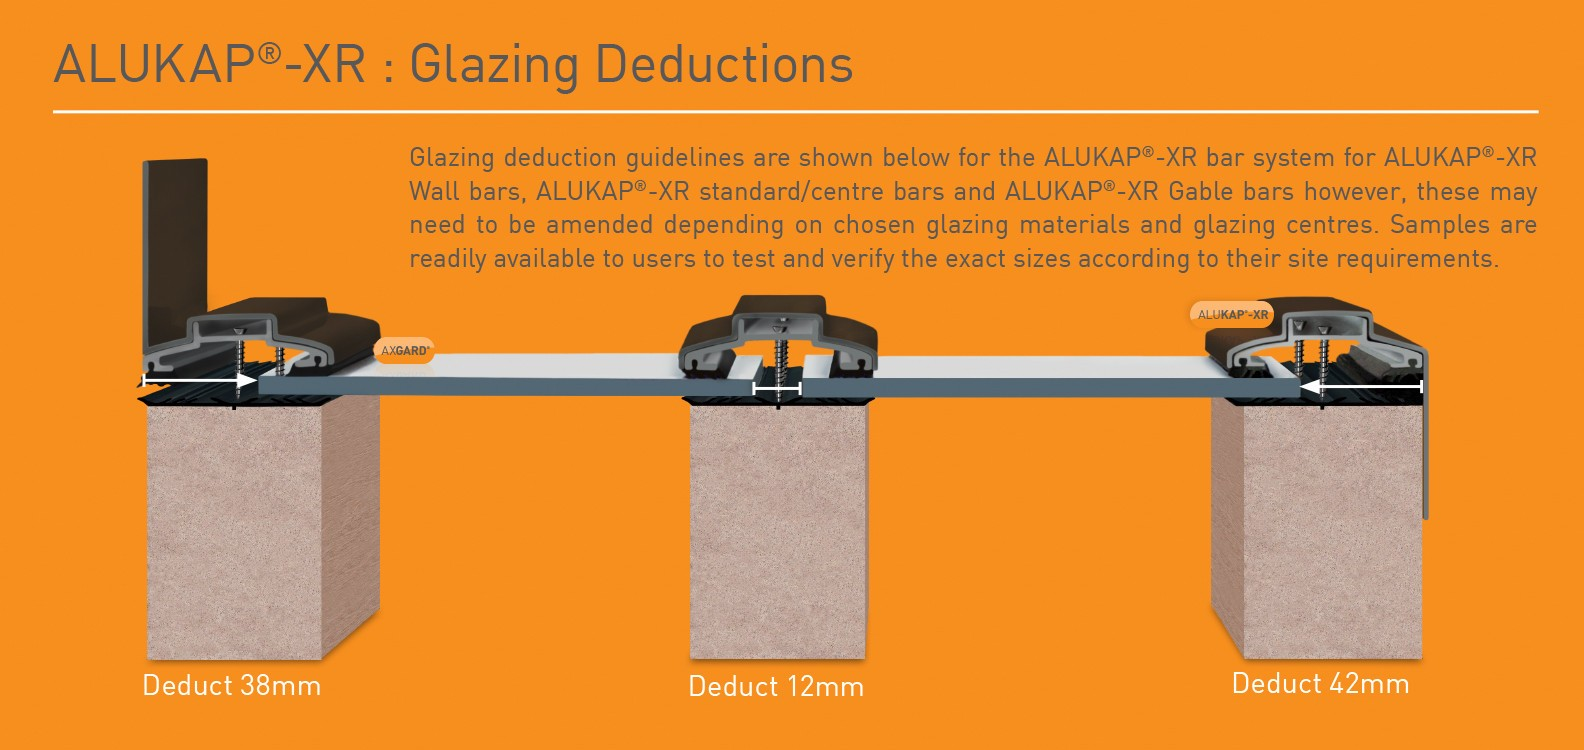 Deductions for Glazing